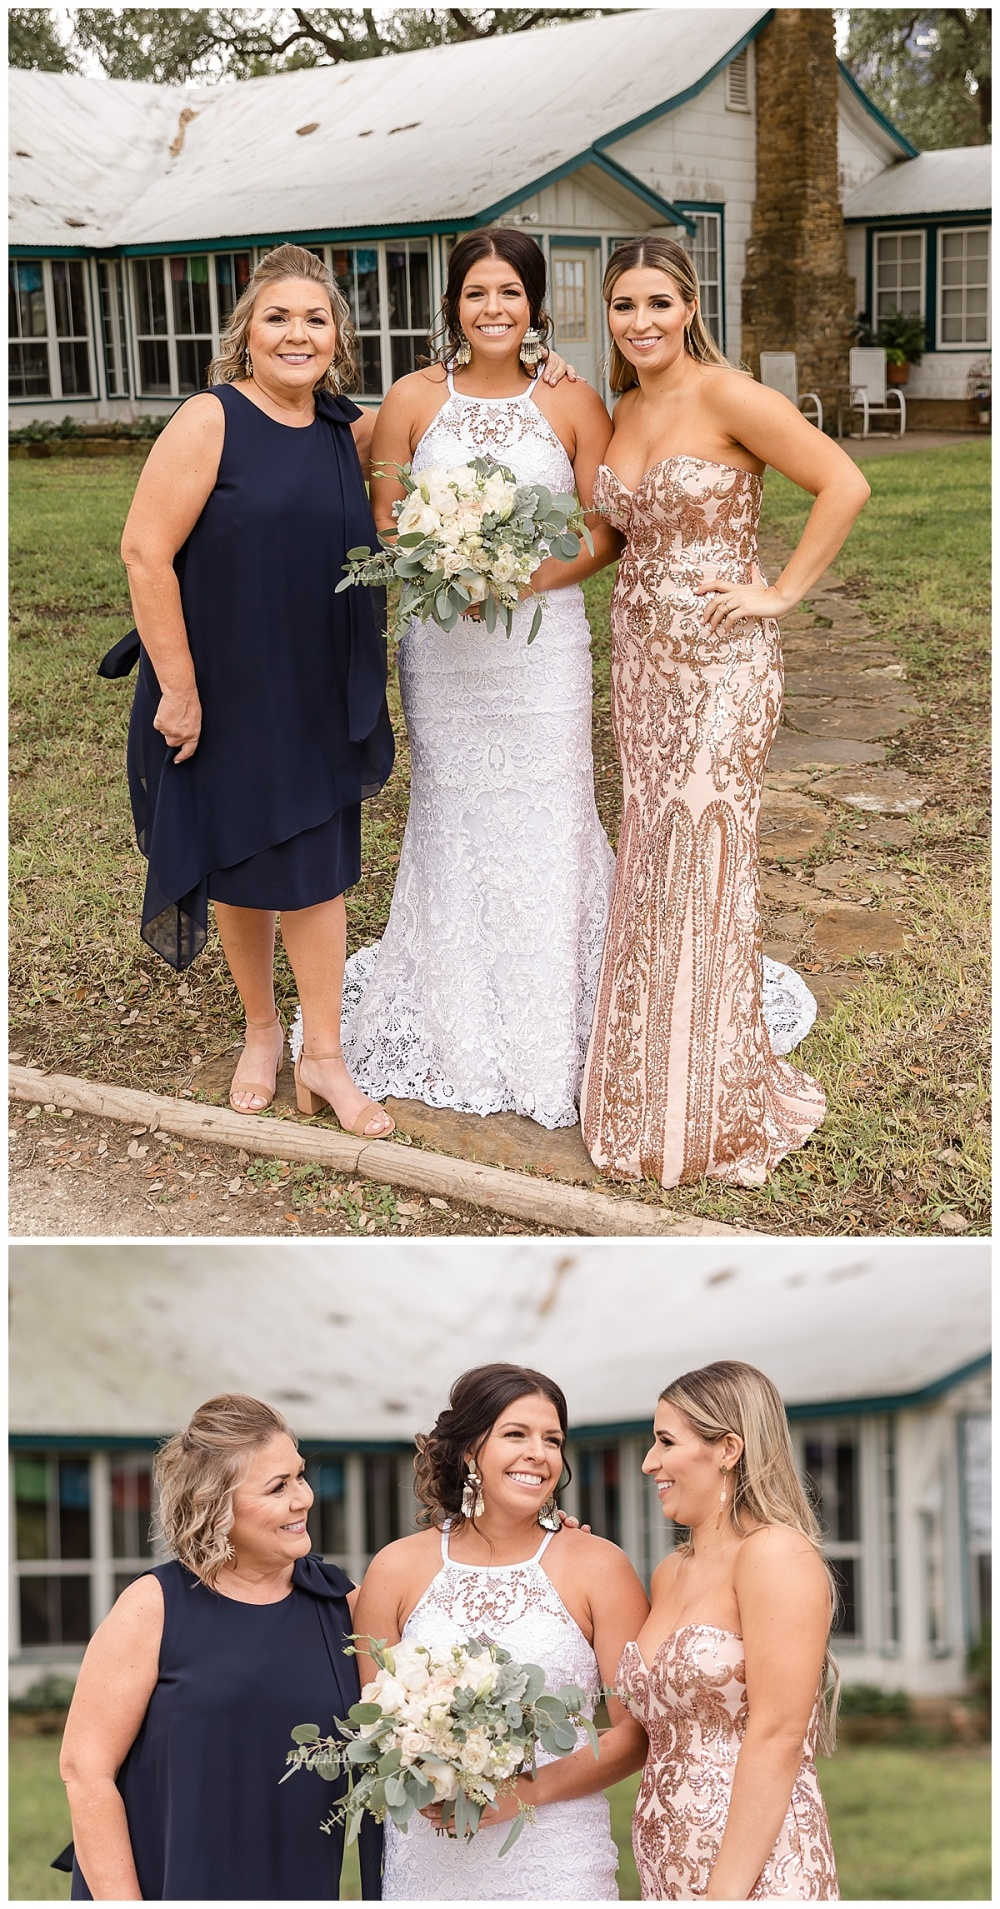 South-Texas-Wedding-Photographer-Rose-Gold-and-Navy-Theme-LaVernia-Bride-Groom-Carly-Barton-Photography_0033